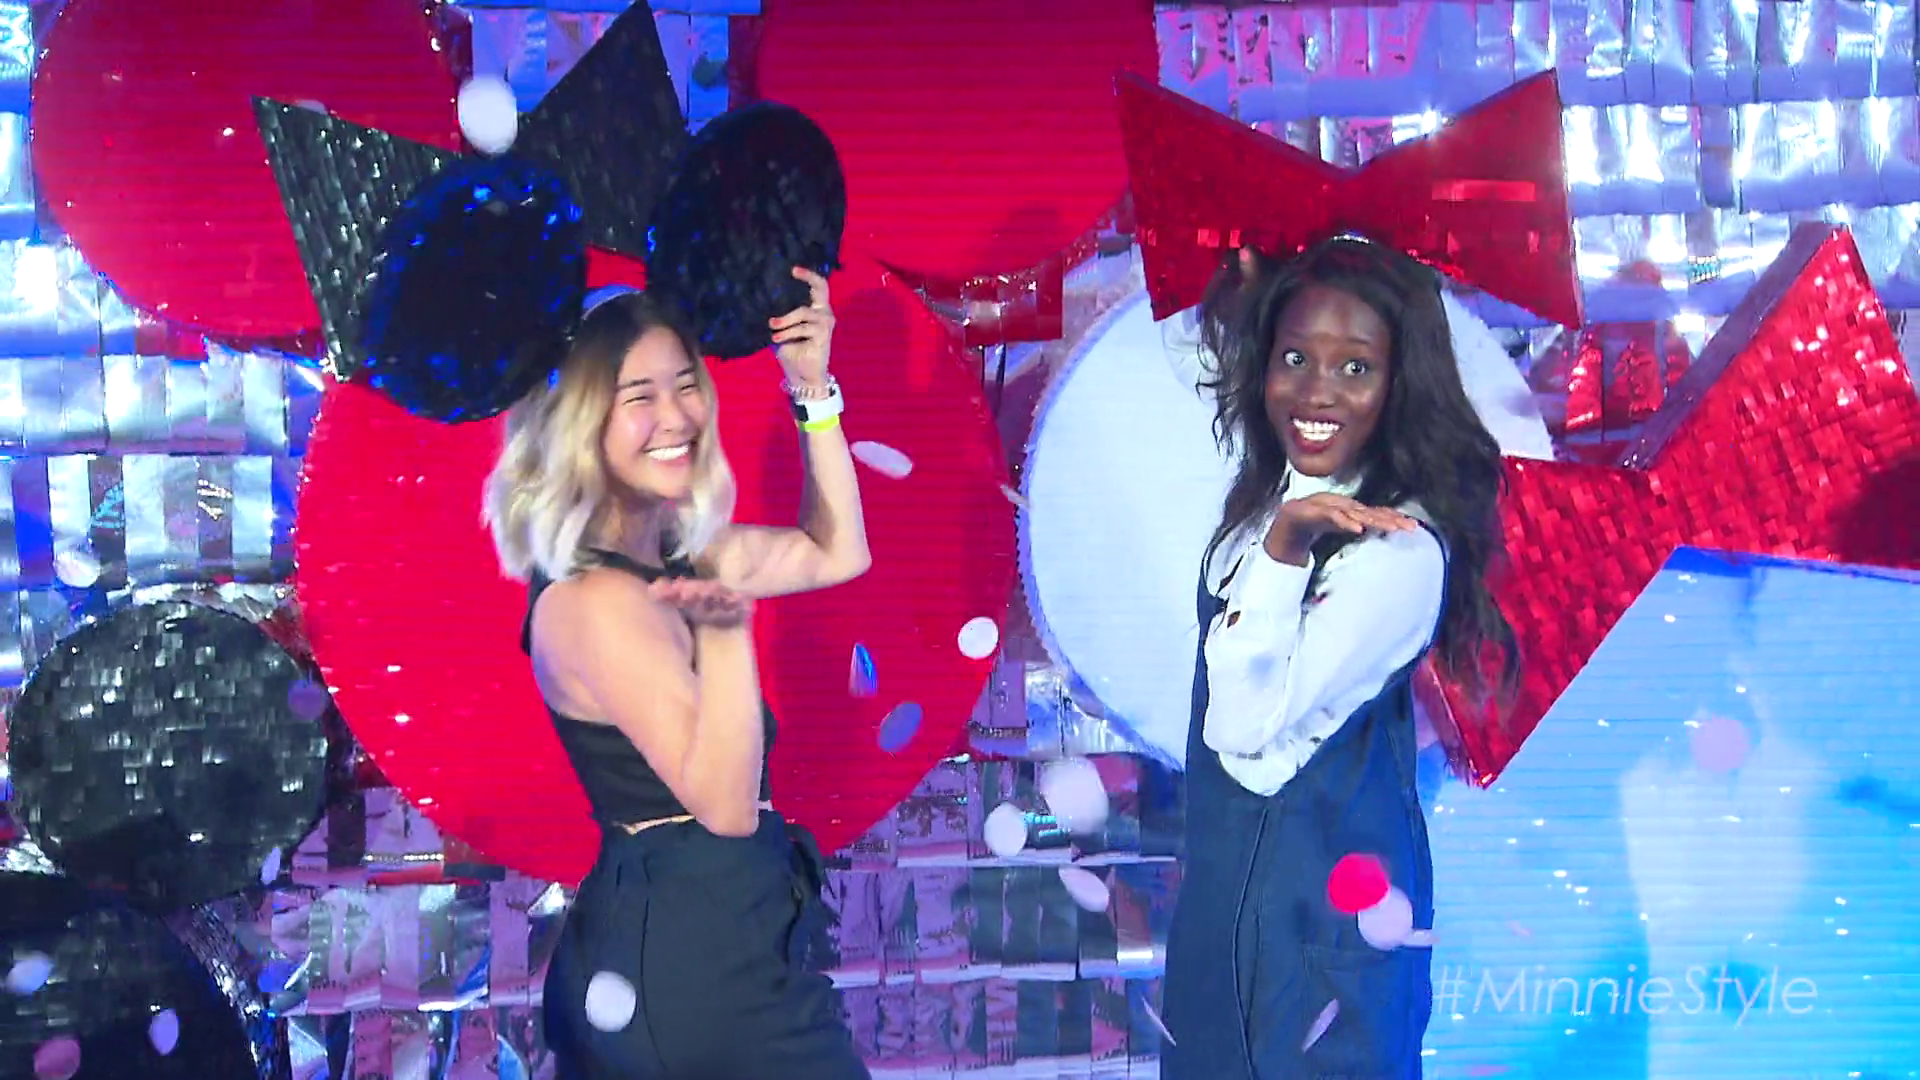 Go Inside the MinnieStyle Room at Refinery29's New York Fashion Week Event - Disney Style